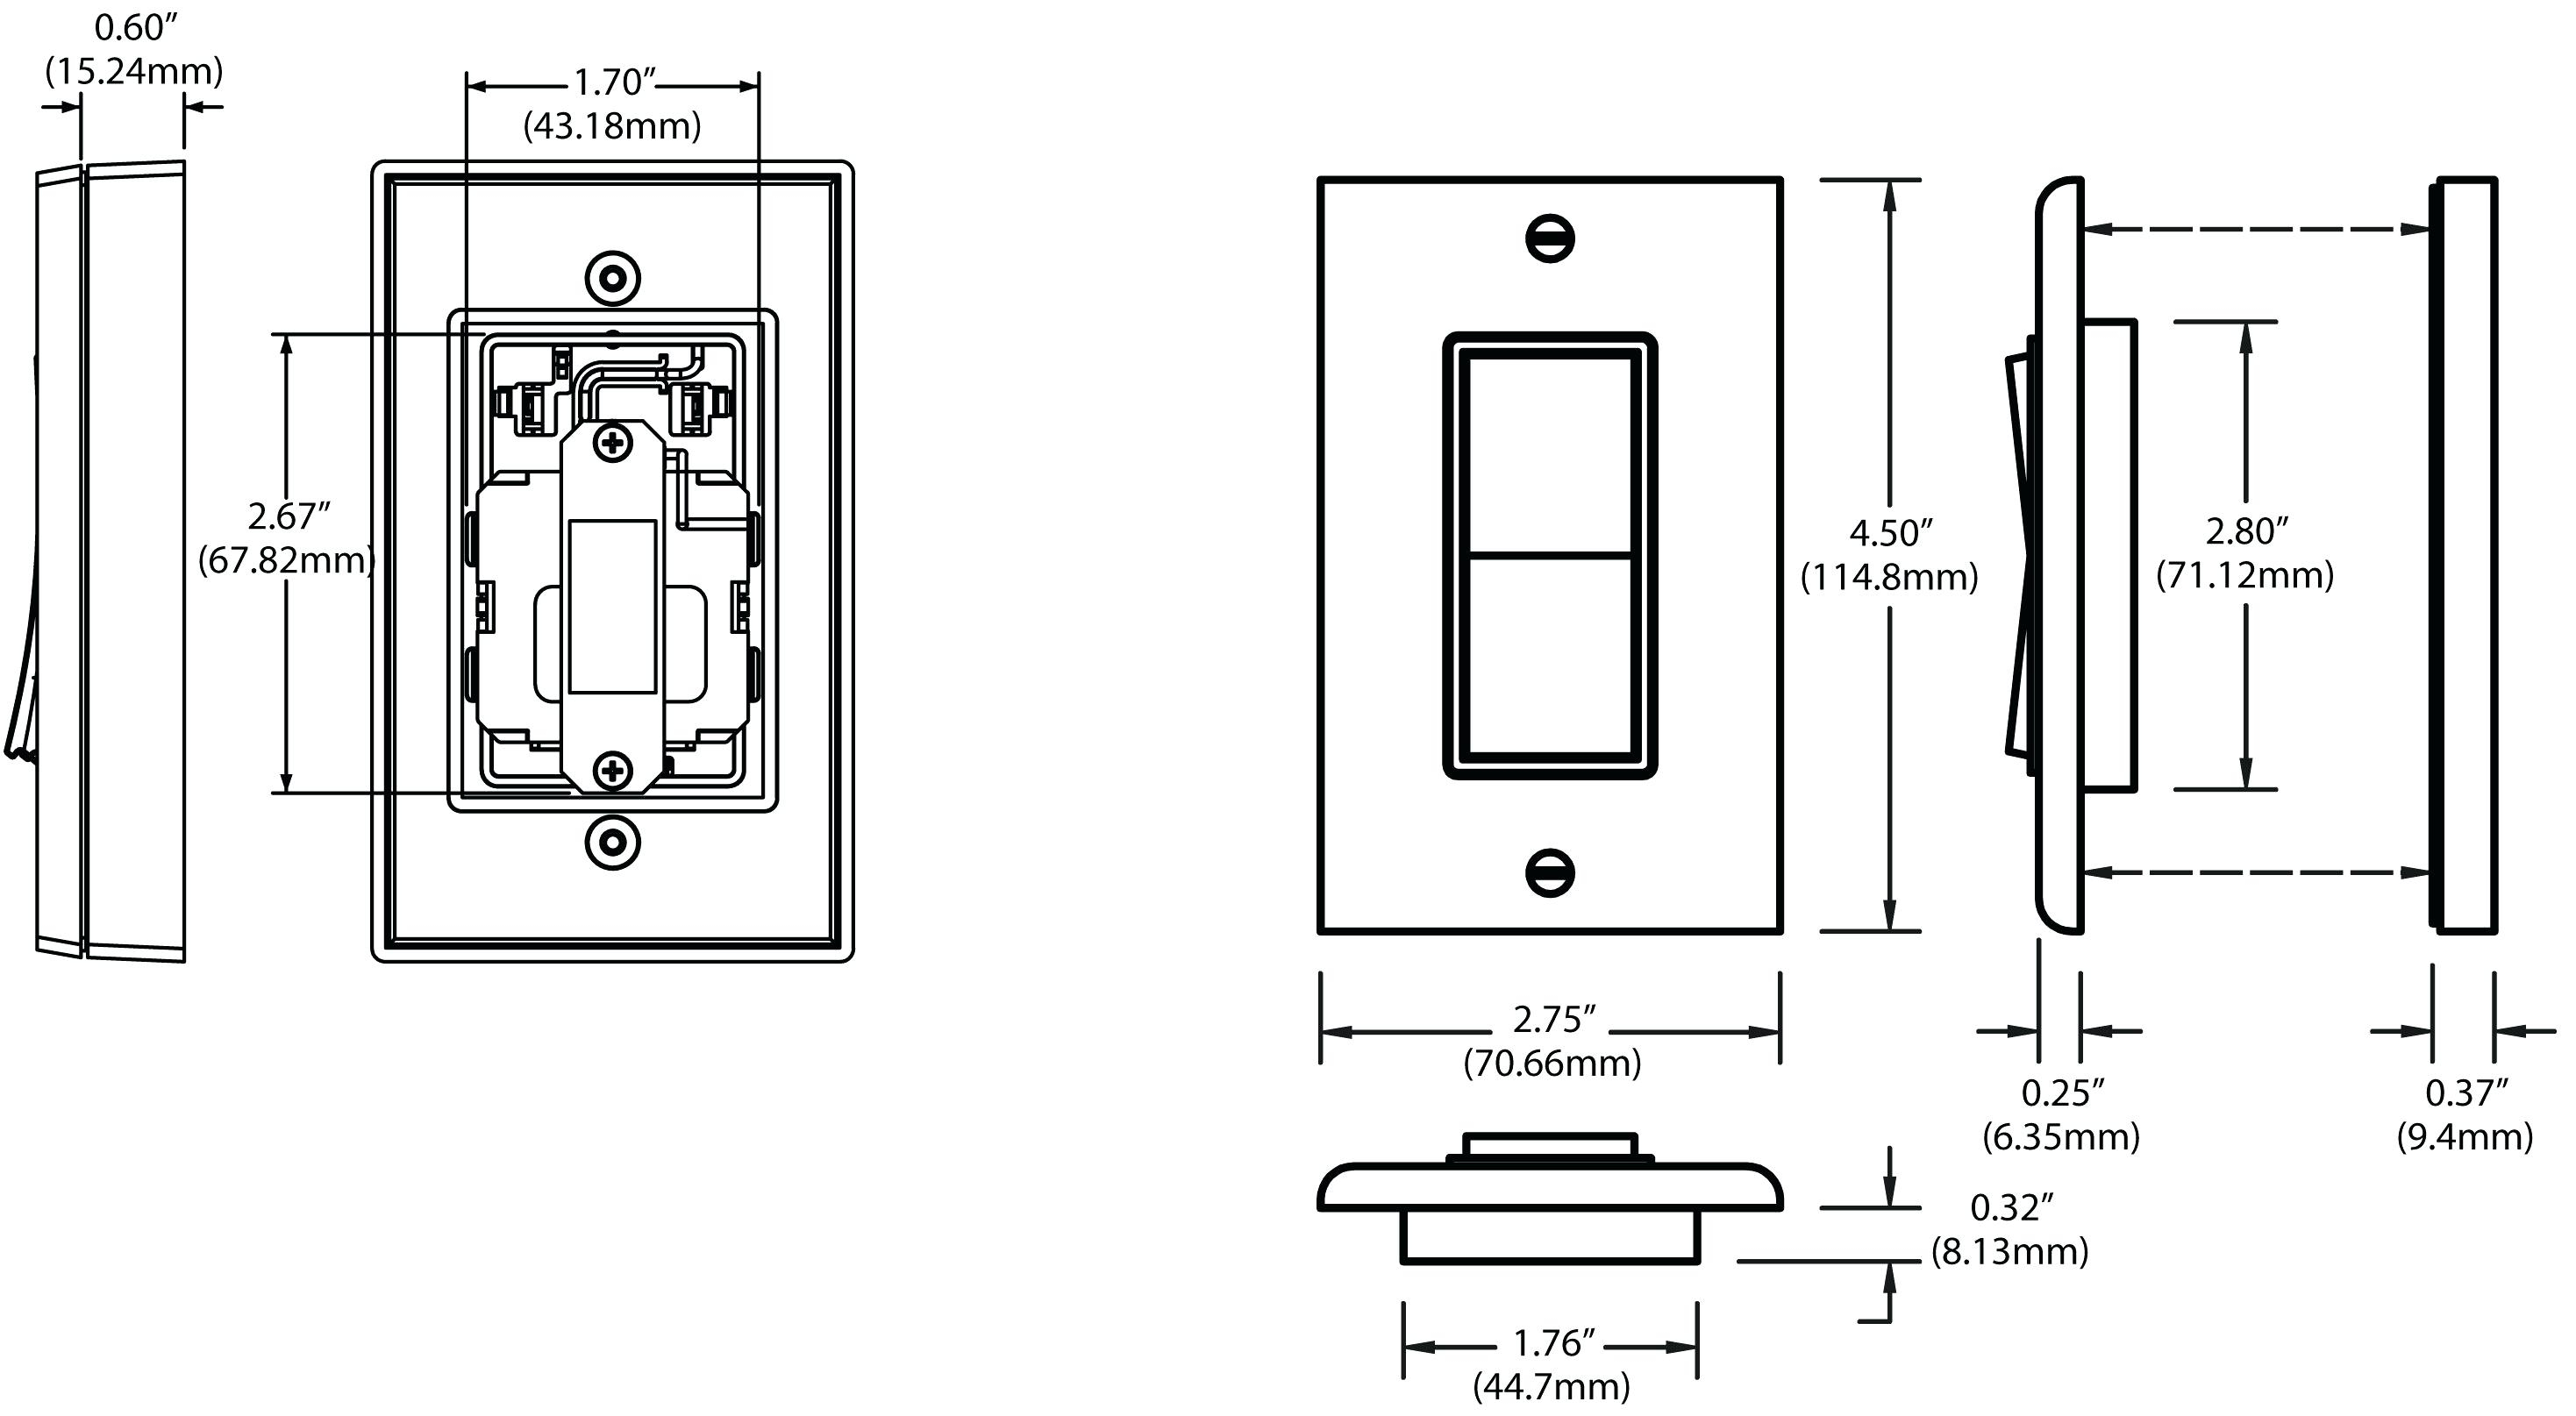 asco series 300 wiring diagram Download-asco series 300 wiring diagram Fresh Double Pole Dimmer Switch Wiring Diagram Dimmers For Wire Diagrams 19-b